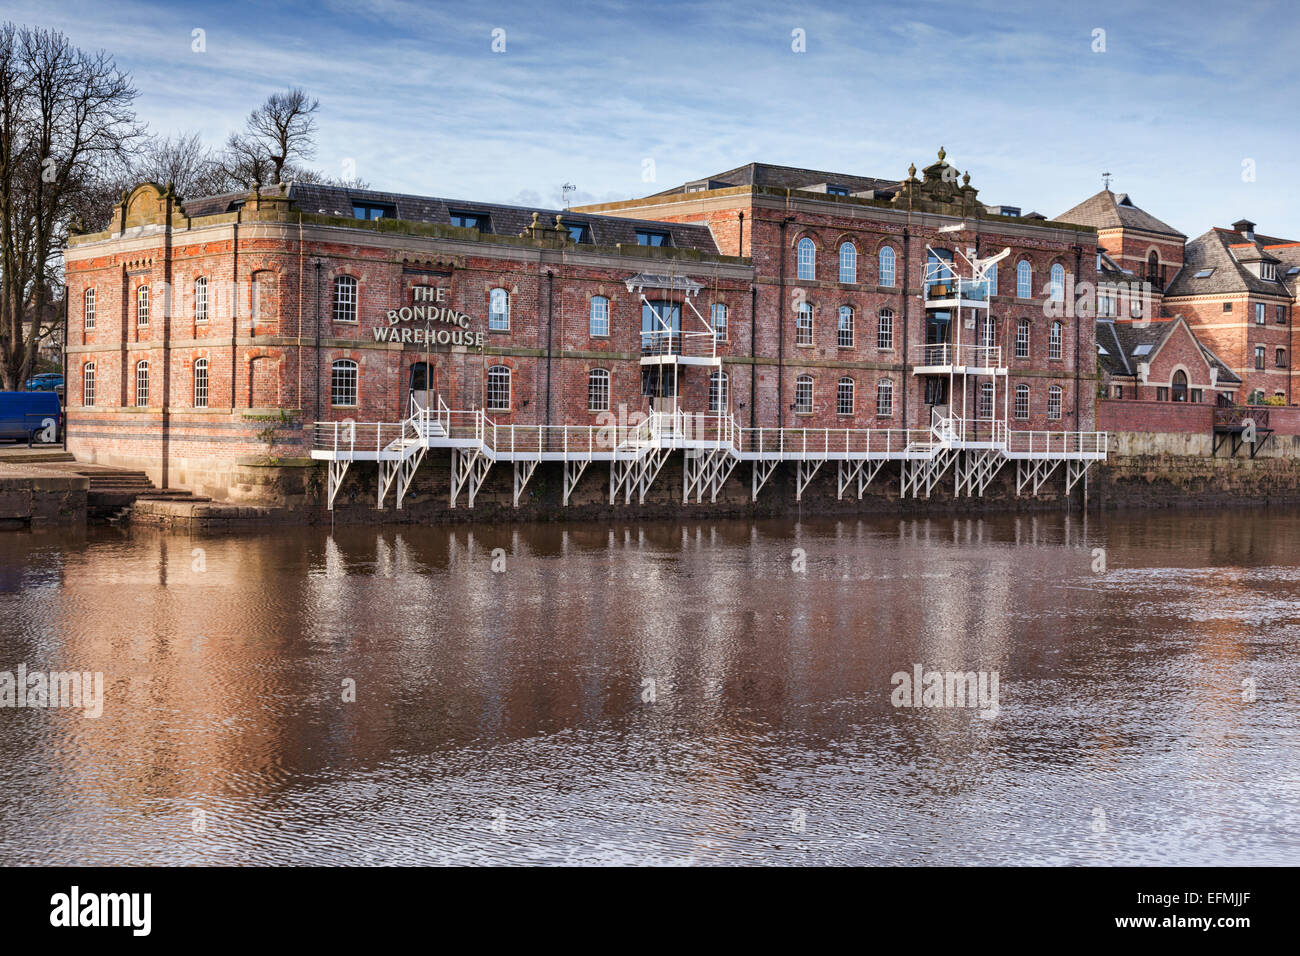 The Bonding Warehouse, traditional architecture on the banks of the River Ouse at York, North Yorkshire, England, - Stock Image